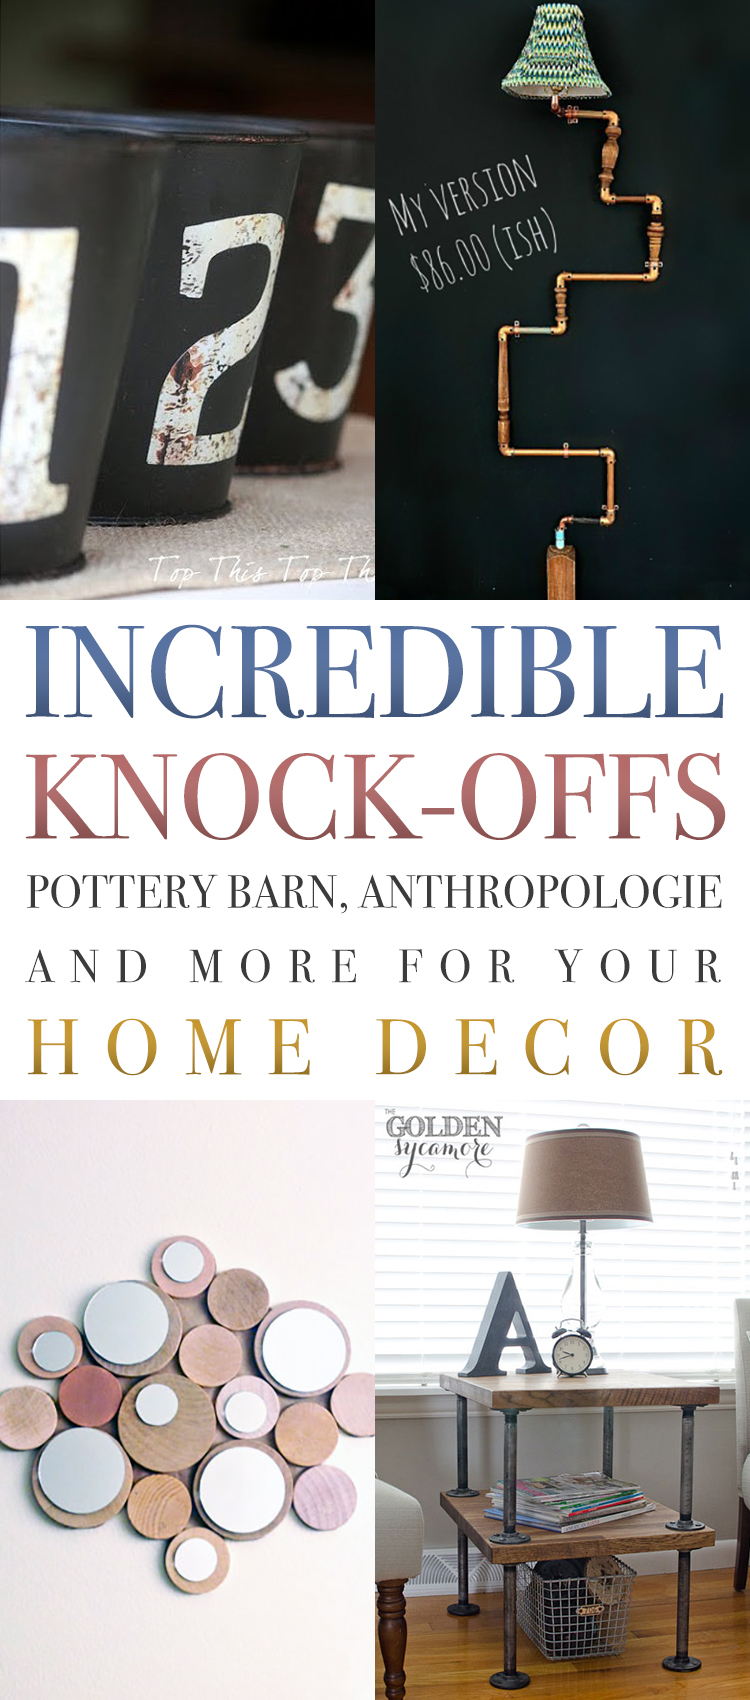 Incredible Knock Offs Pottery Barn, Anthropologie And More For Your Home  Decor